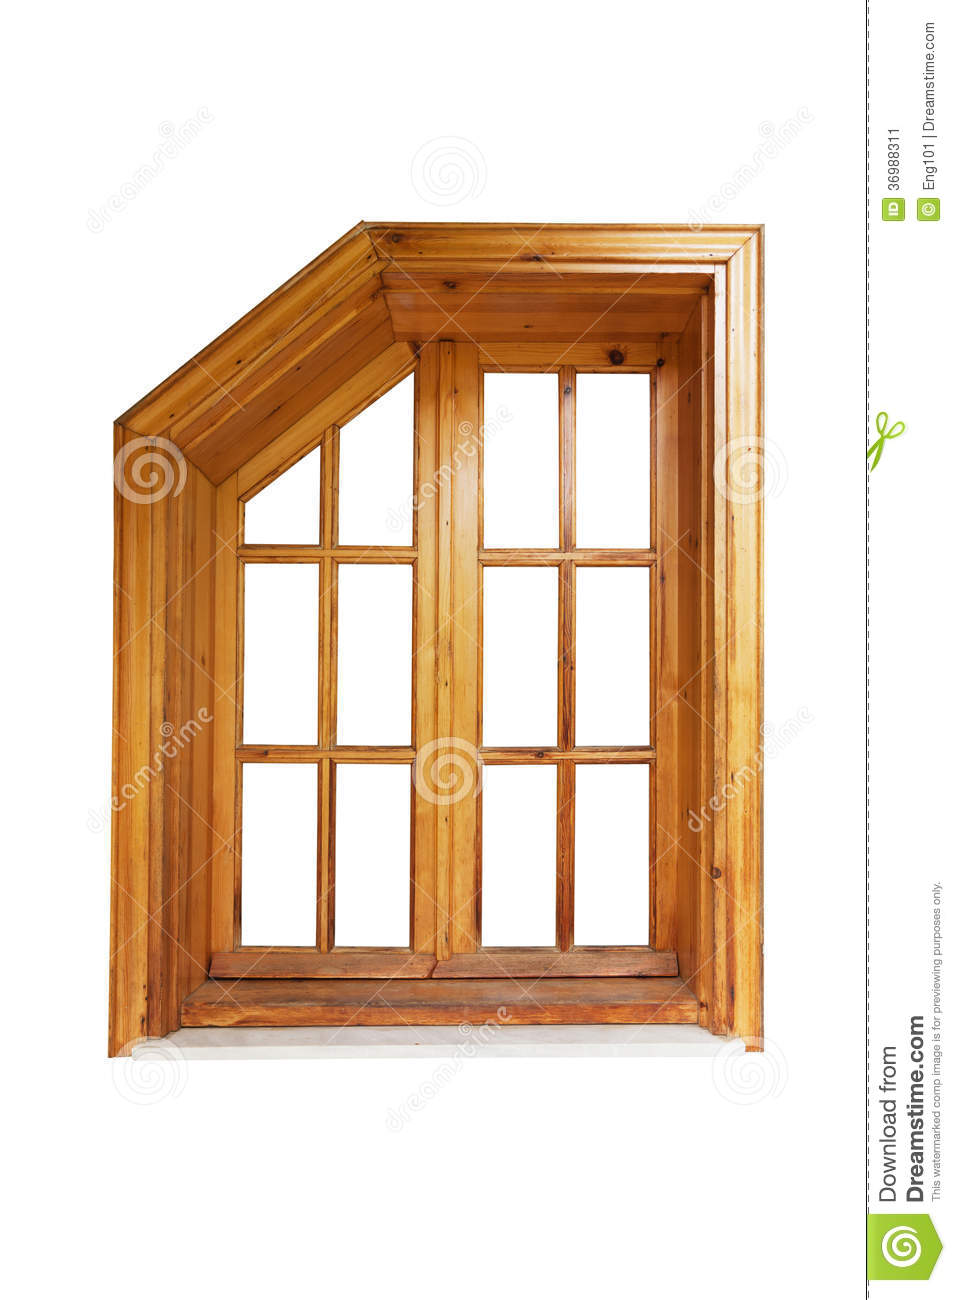 Wooden window with cut corner and casing stock image for Exterior window casement design